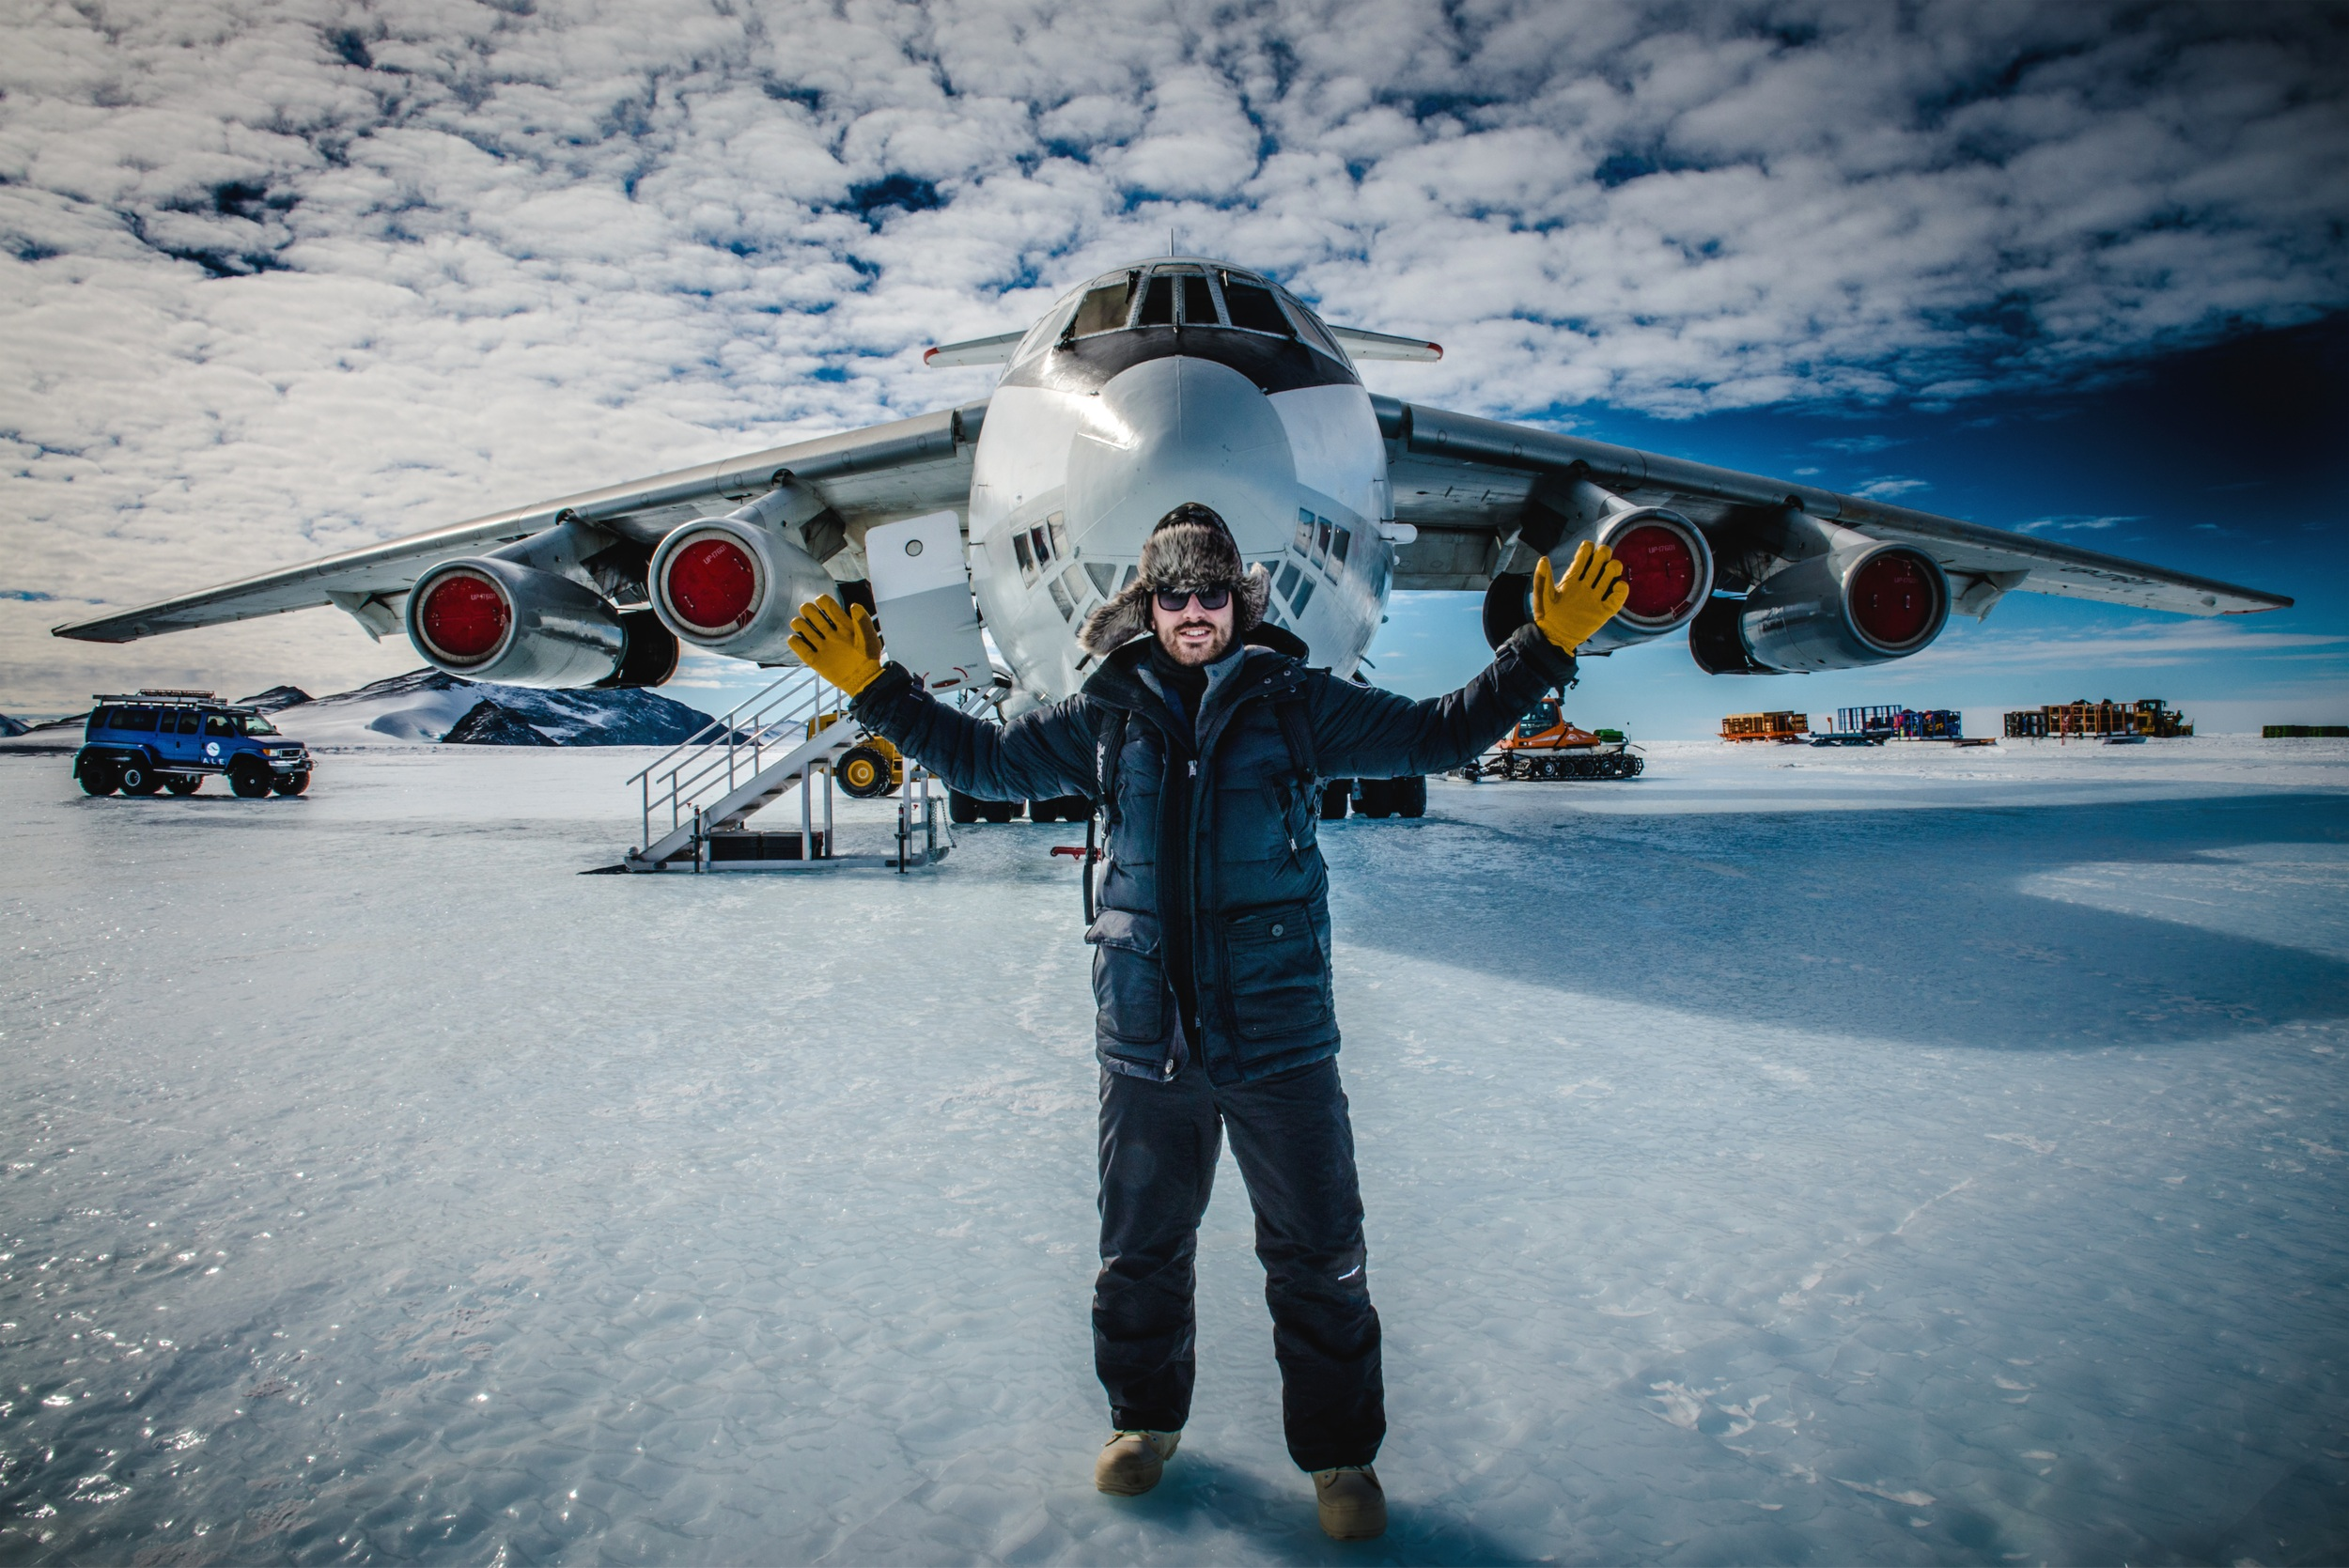 Standing on the blue ice runway in front of the Ilyushin 76 aircraft. Photo by Mark Conlon.